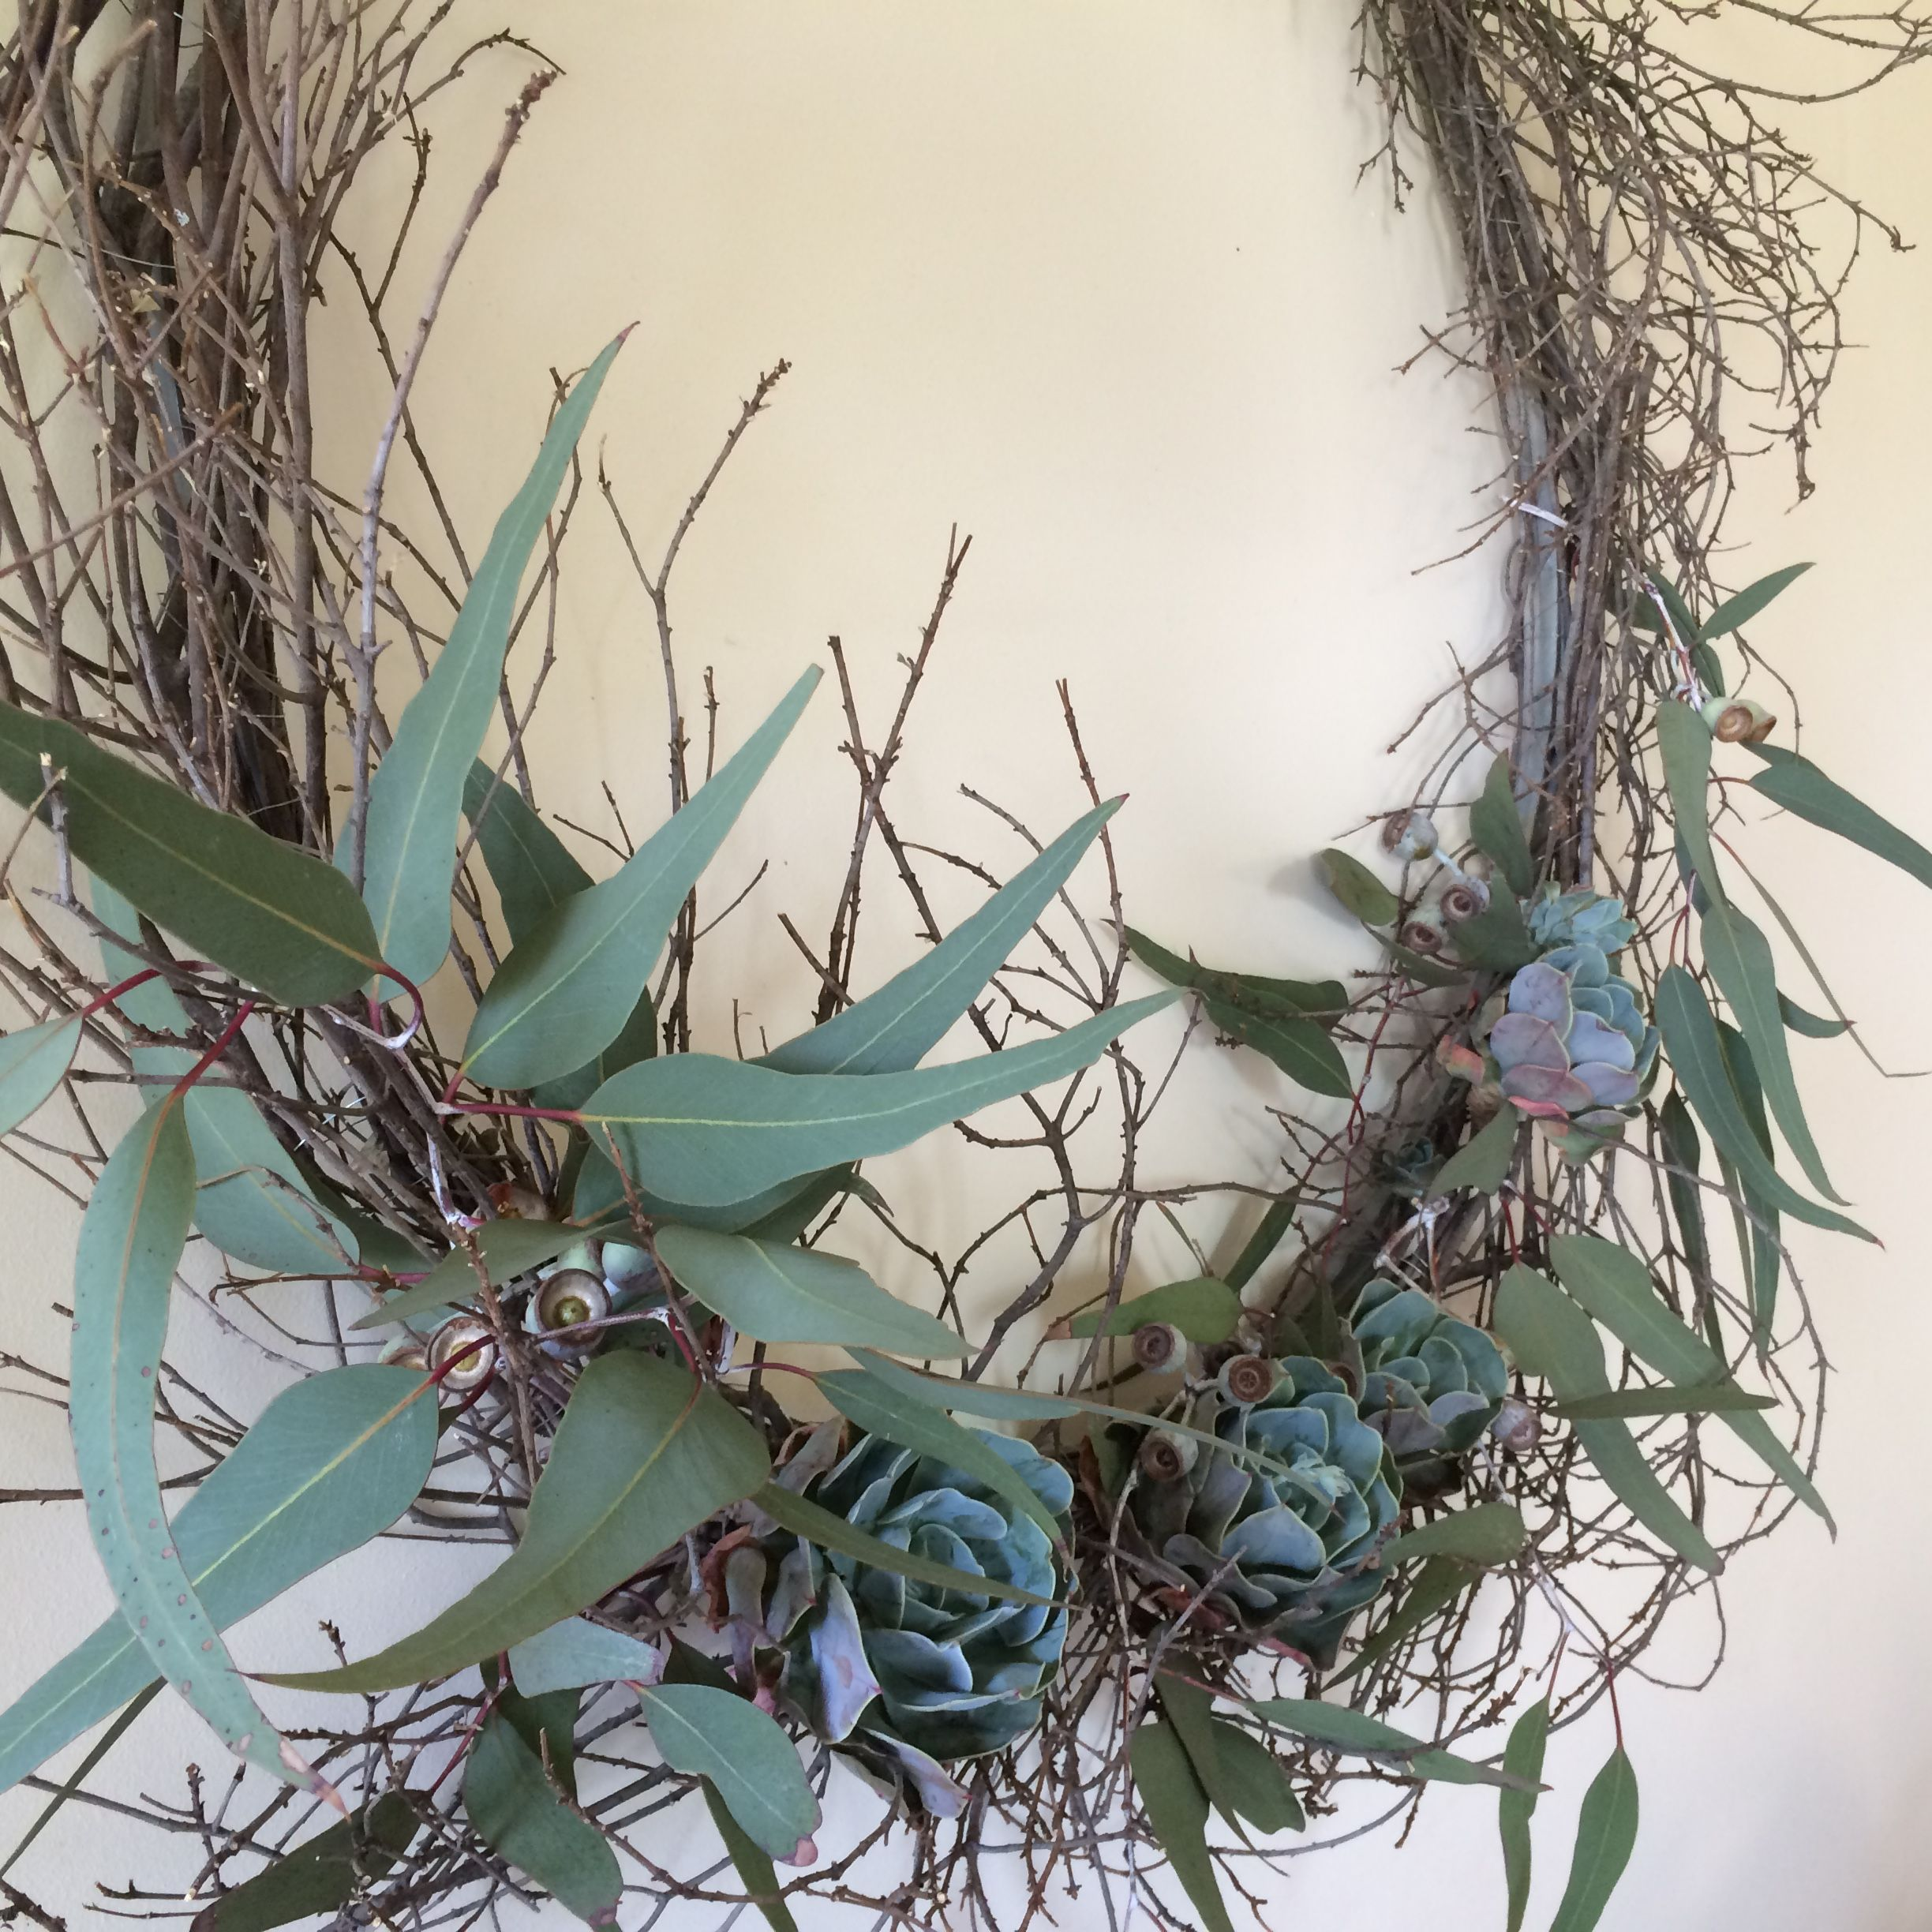 Diy Natural Christmas Wreath Made From Recycled Wire, Twigs, Succulents